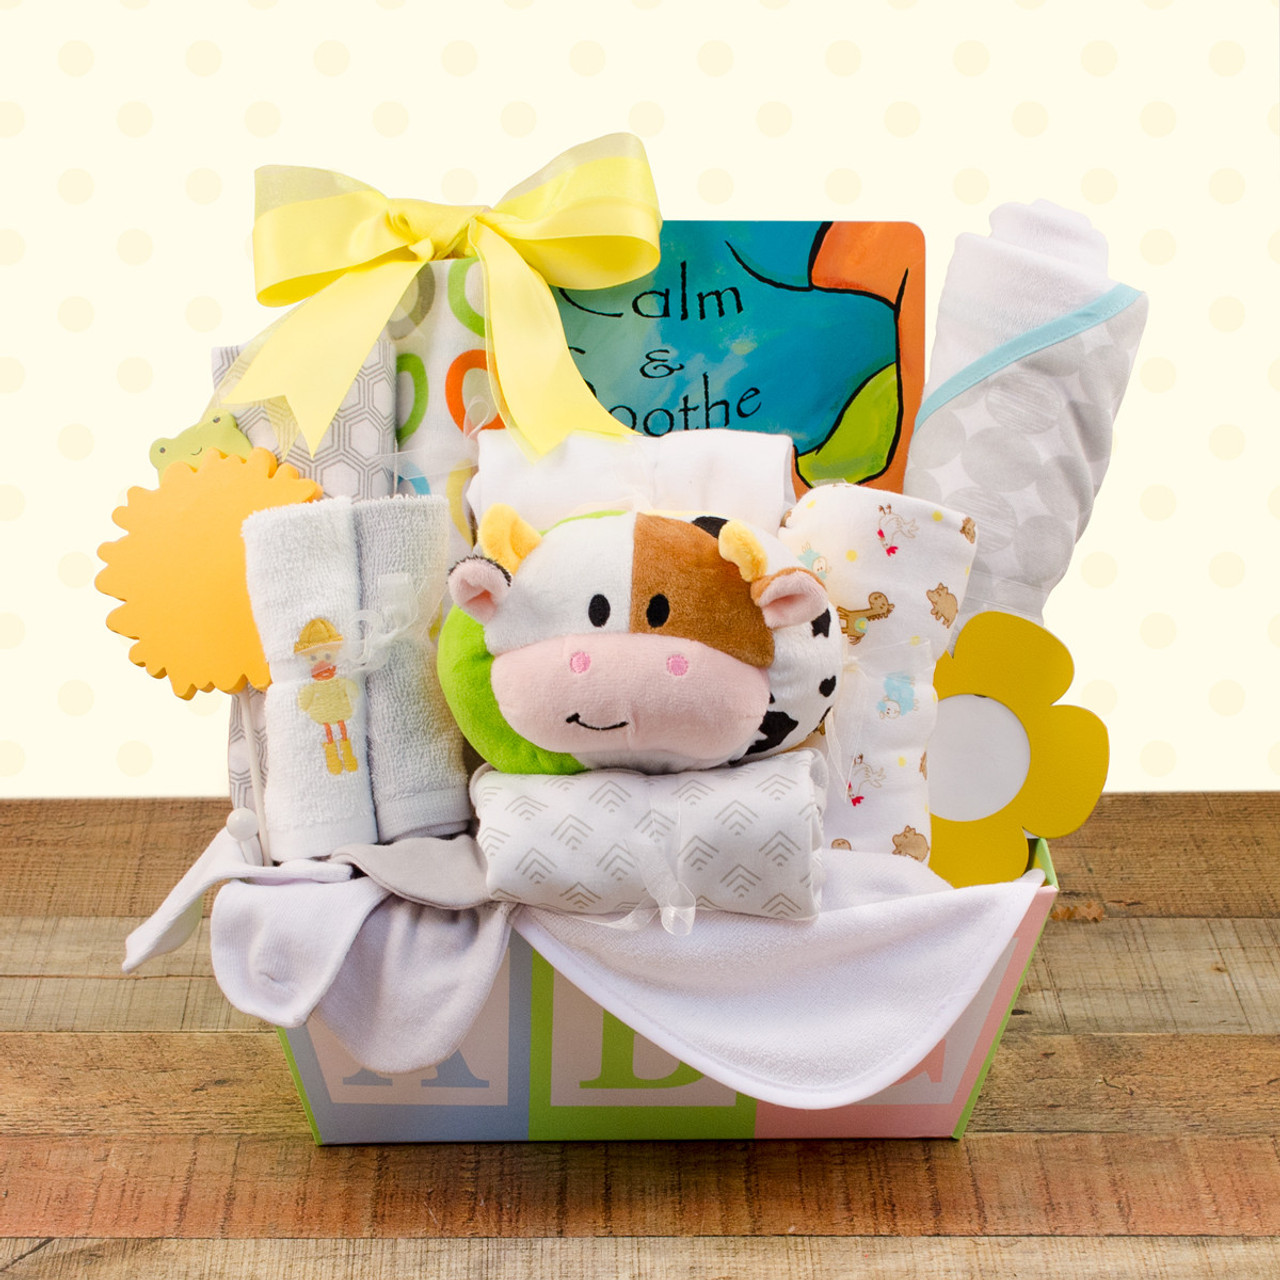 Image 0 of New Baby Love: Baby Gift Basket